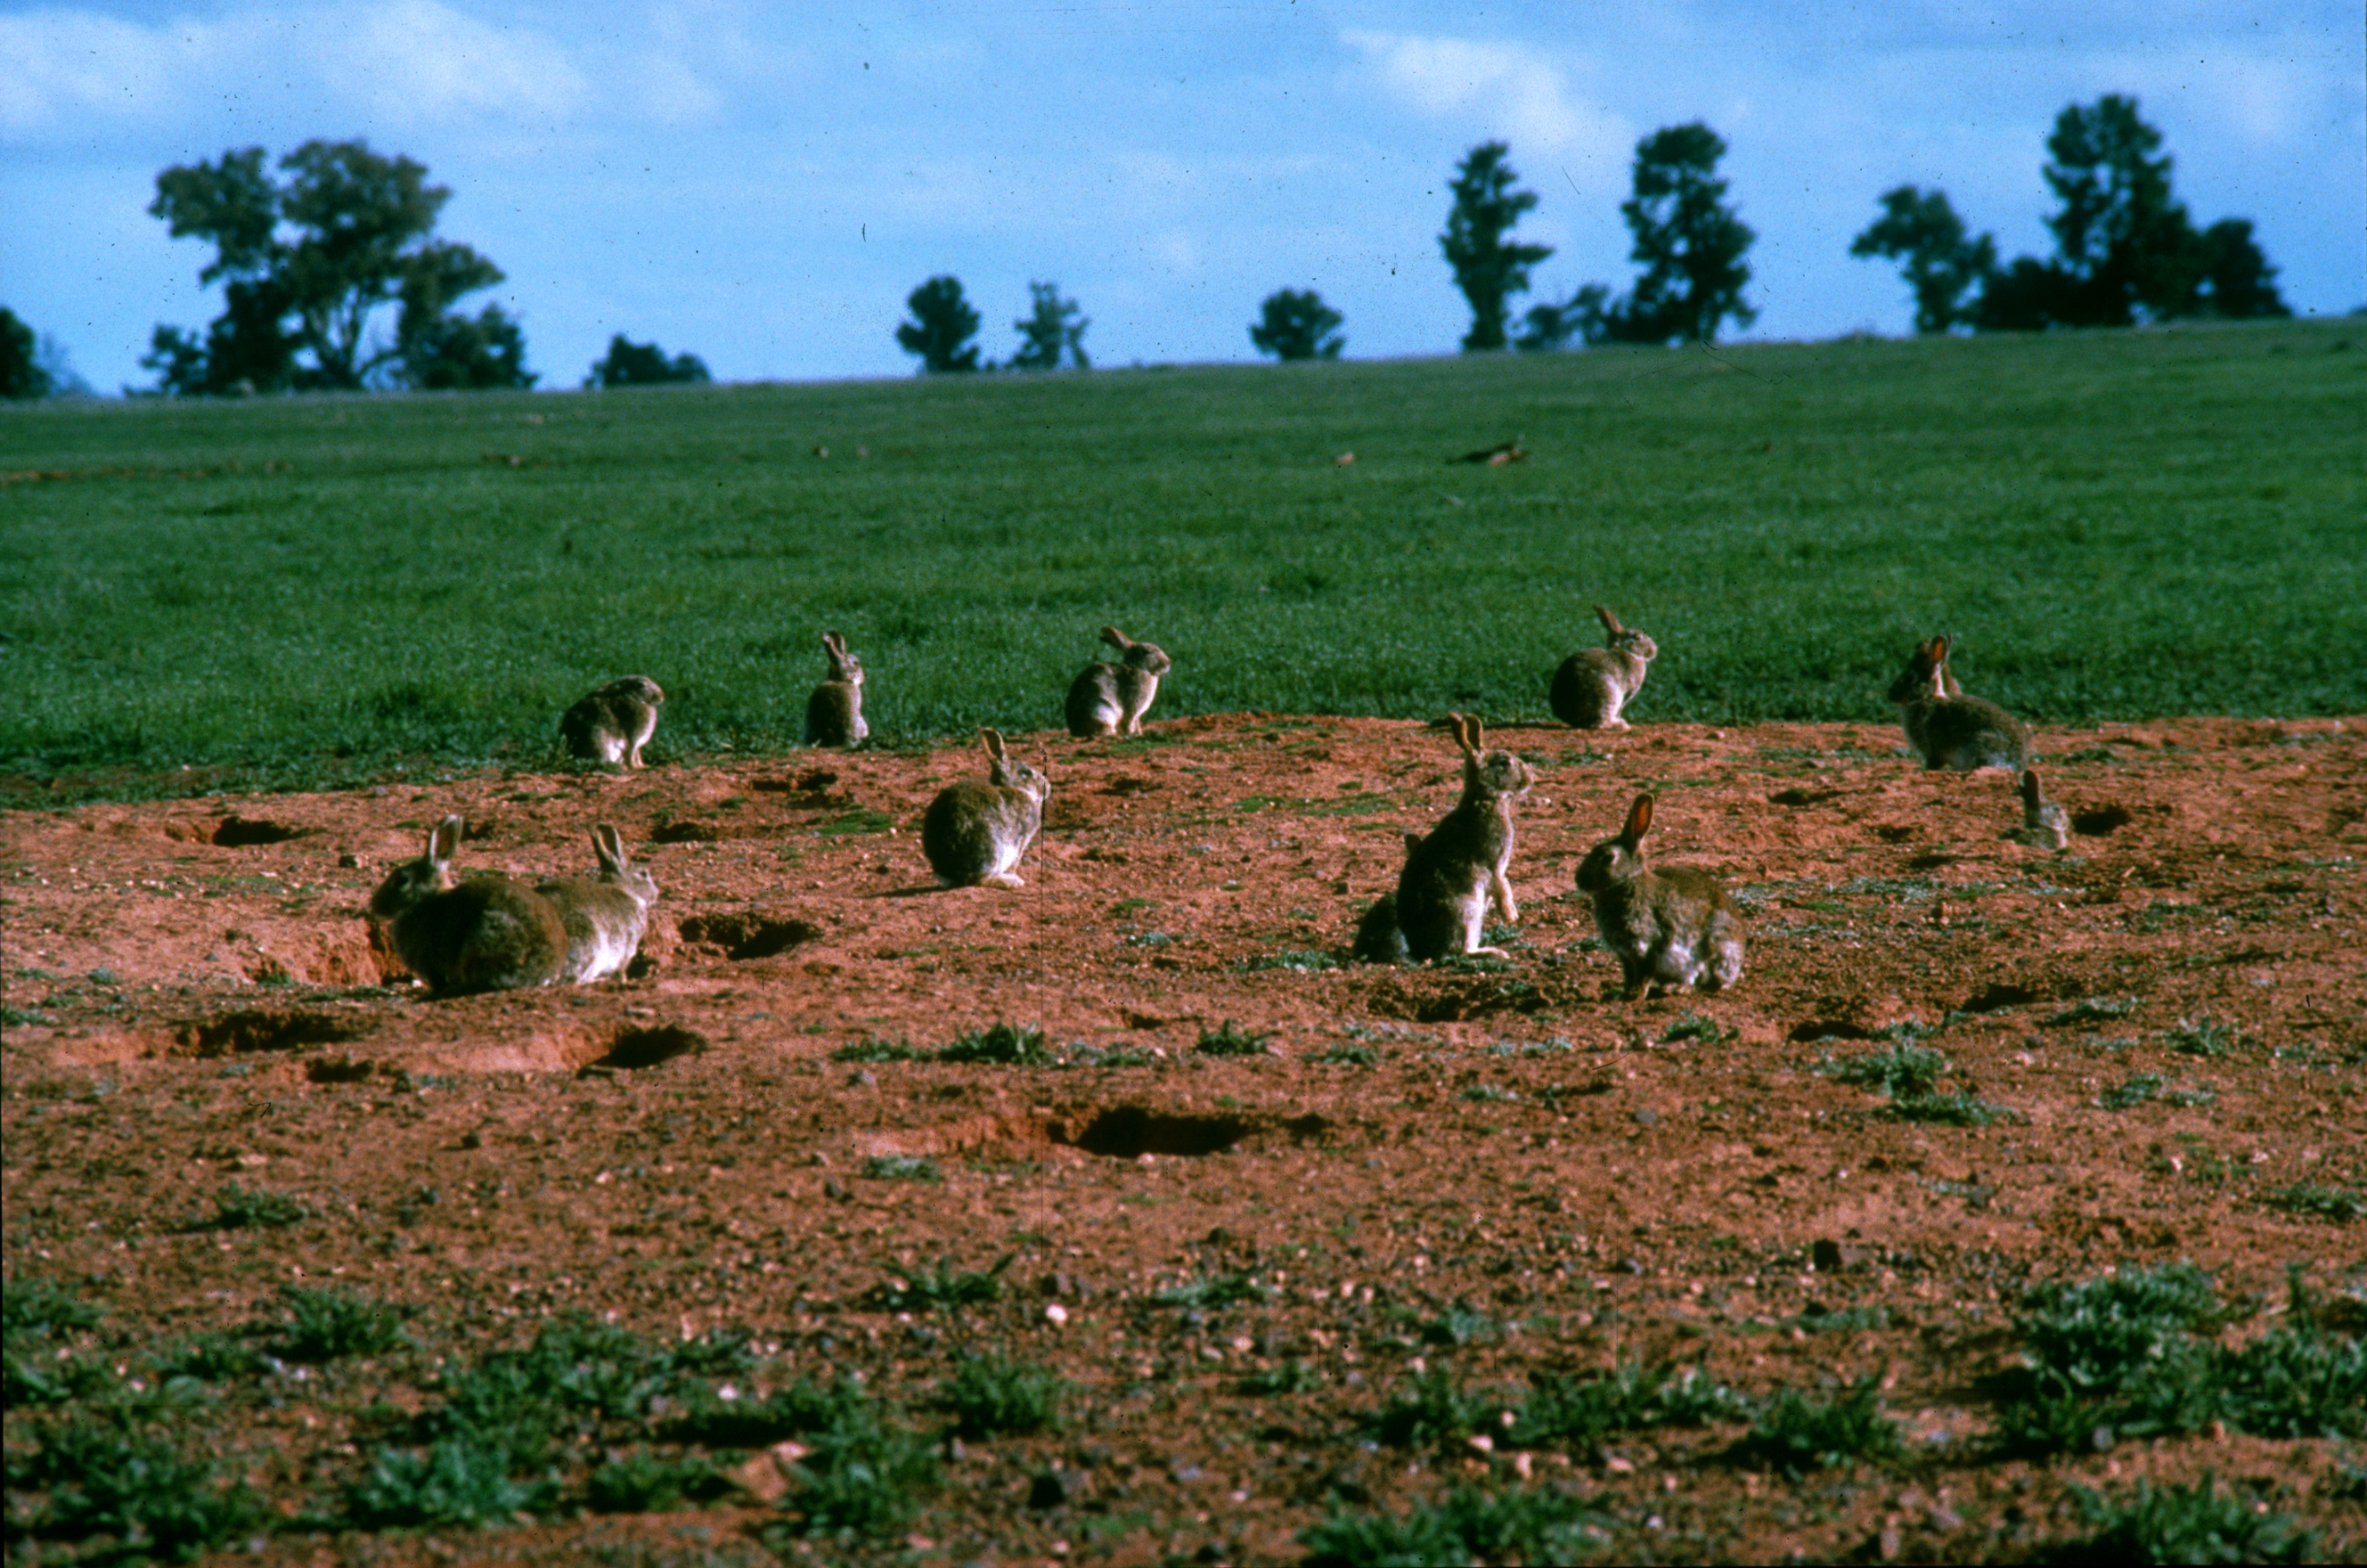 discuss history geography ecology rabbit invasion australia The composition of a given economy is inseparable from civilization's history and social organization, and from earth's geography and ecology, eg ecoregions which represent different agricultural and resource extraction opportunities, among other factors.